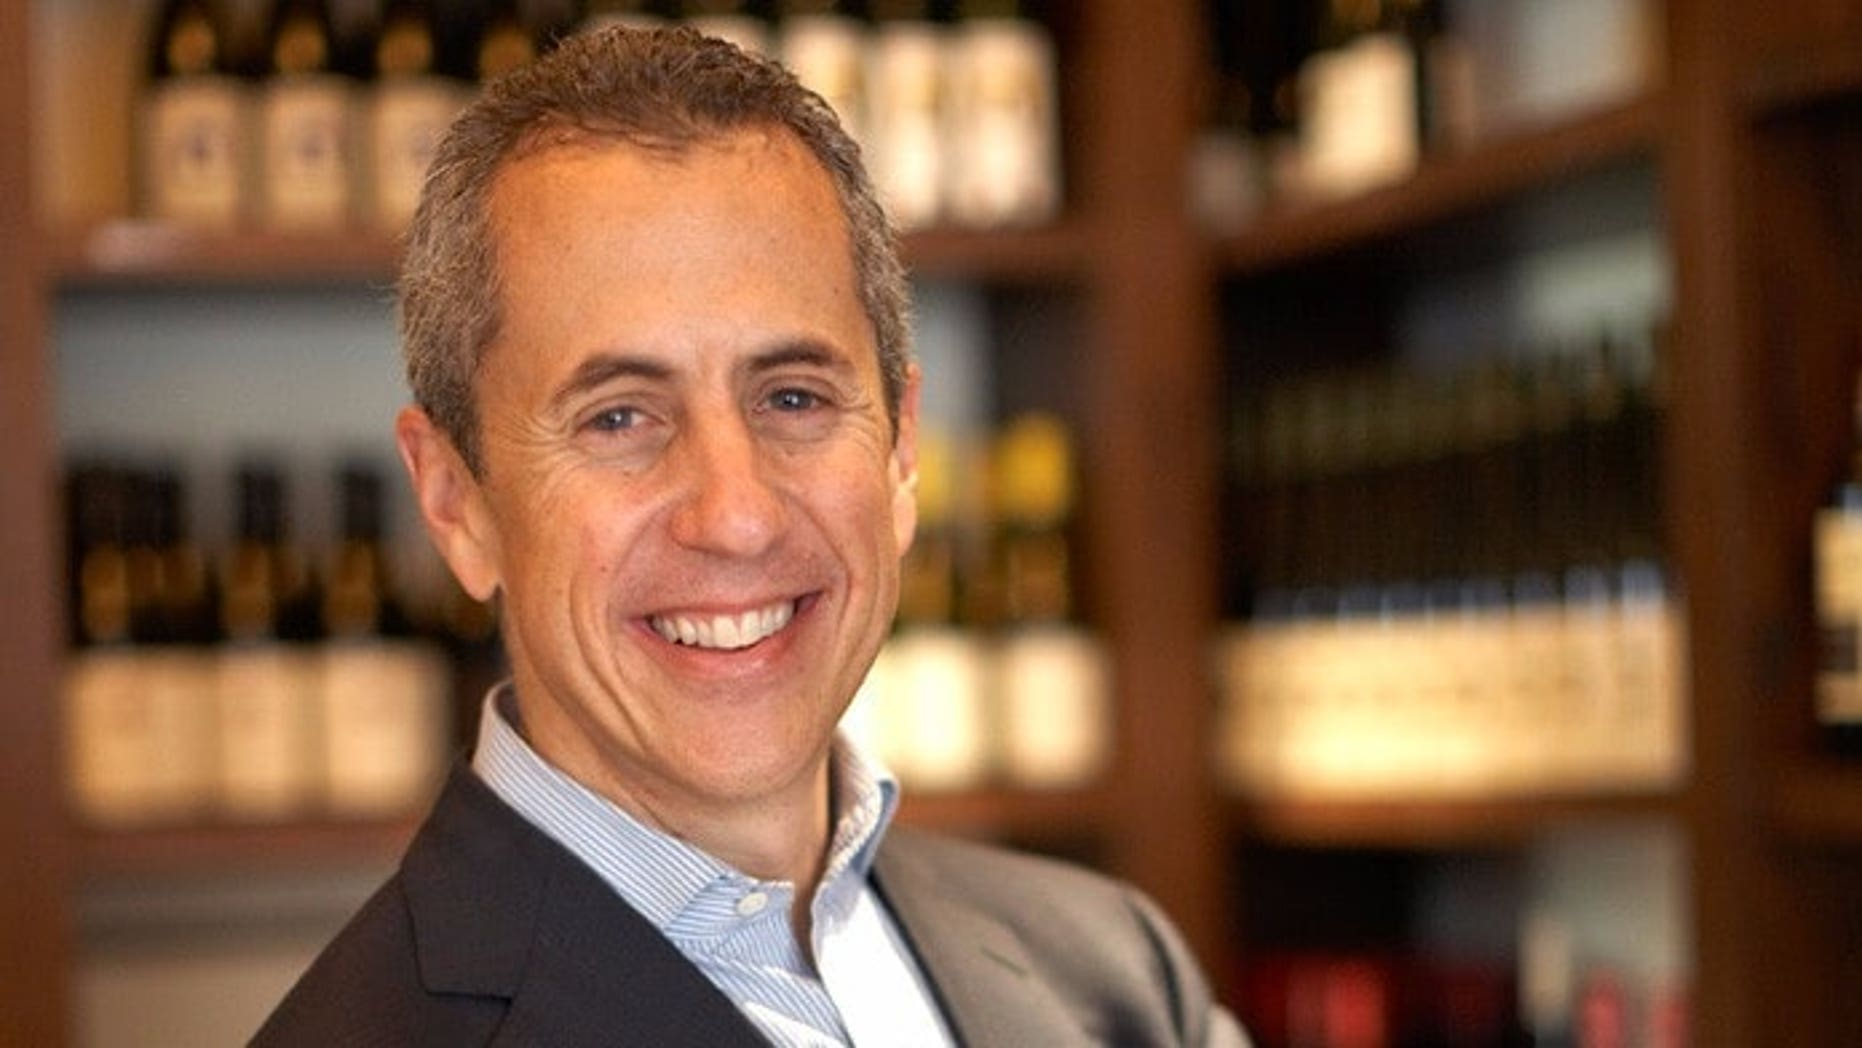 Danny Meyer is introducing paid parental leave for employees.